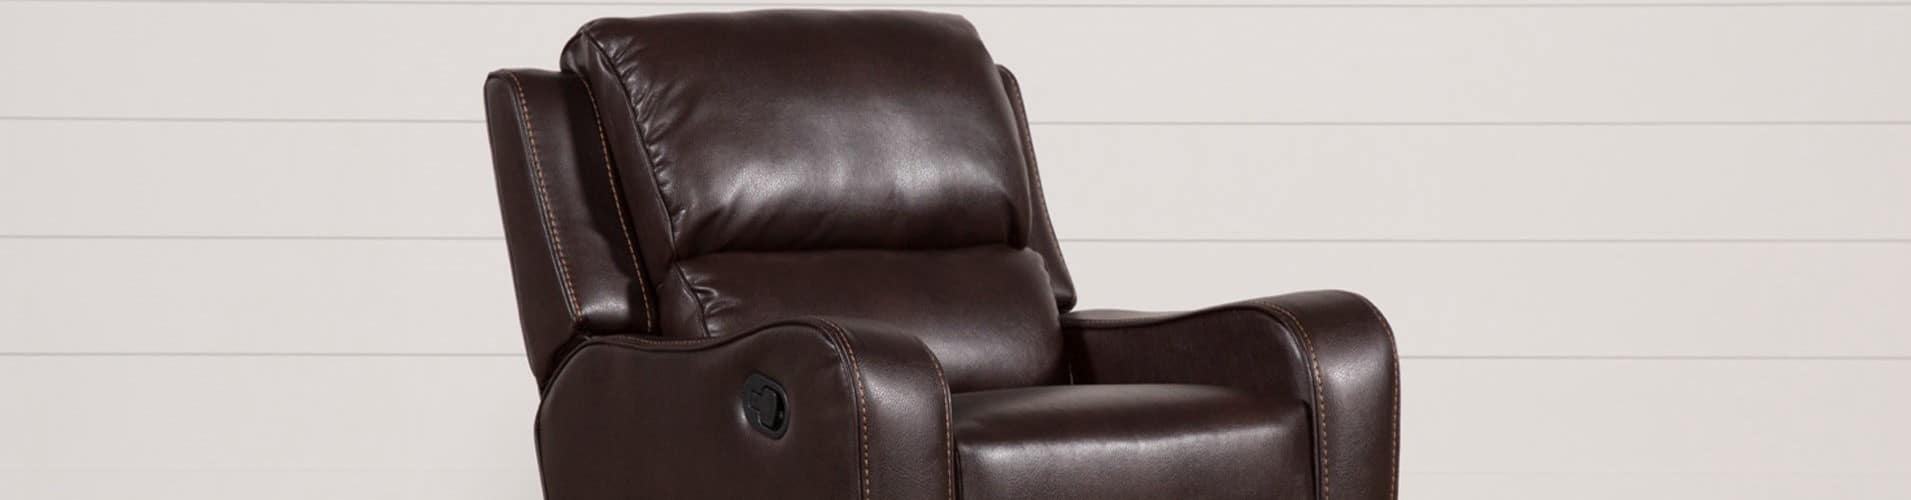 What is a Glider Recliner? – Find More Facts Here!